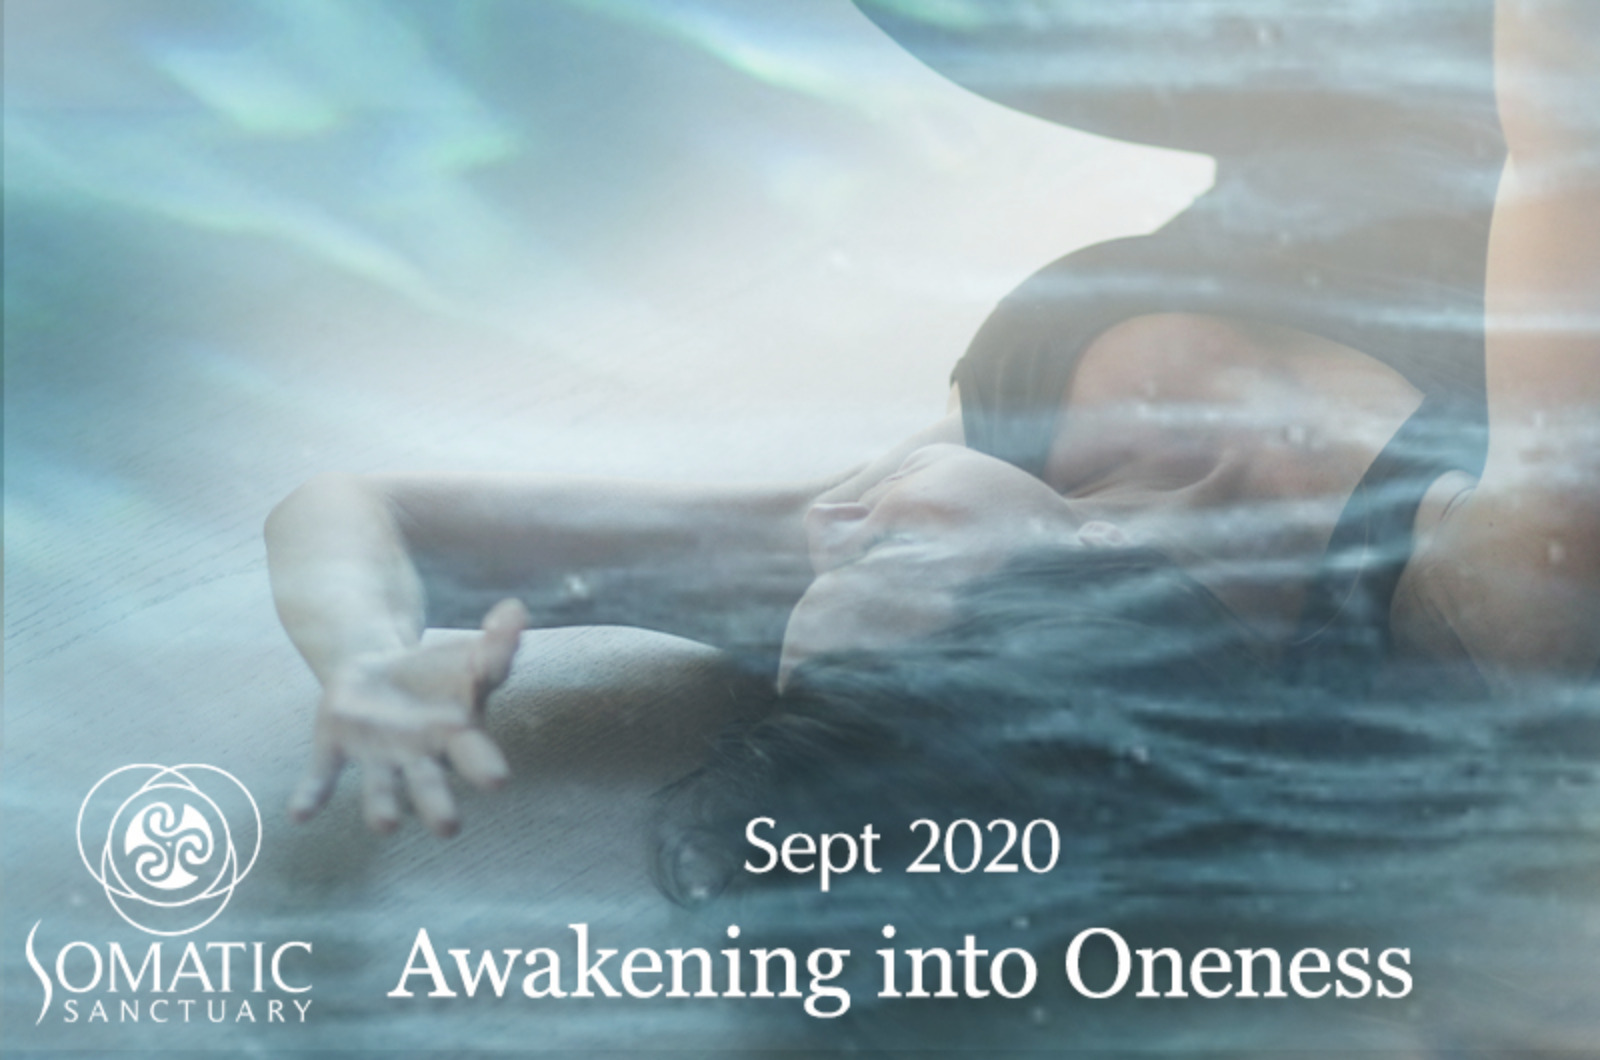 Awakening into Oneness: Sept 2020